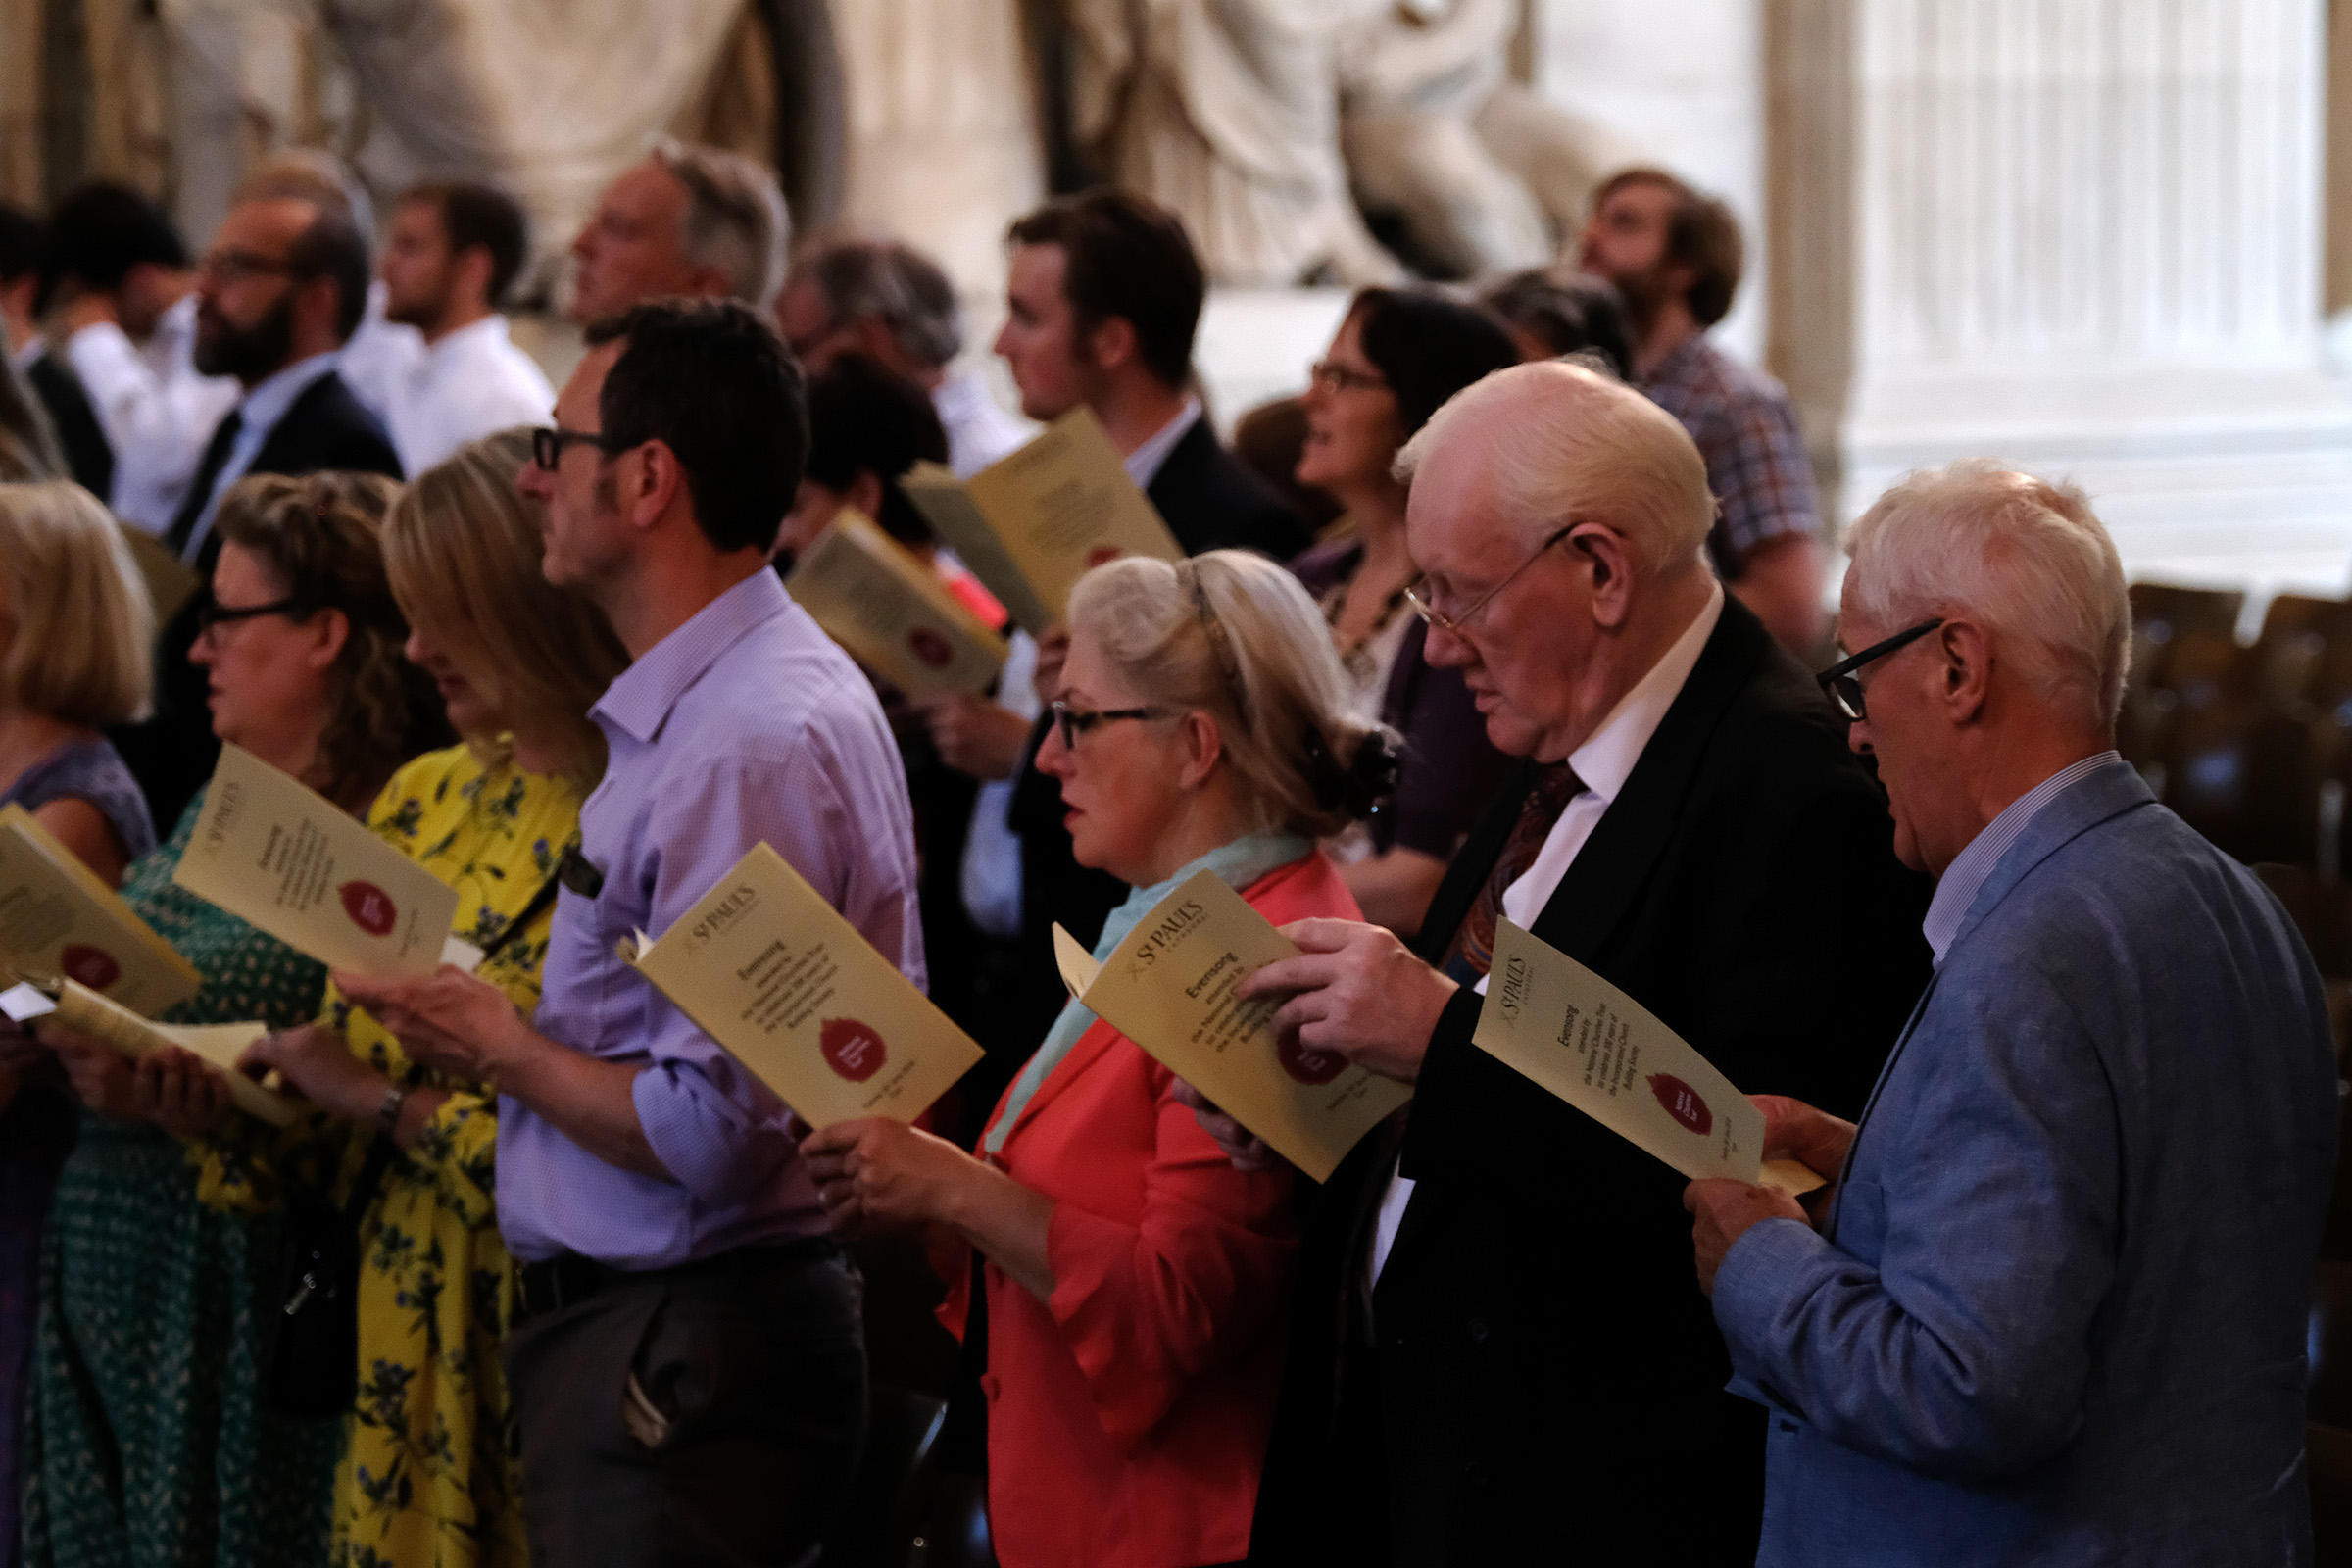 200 years of the ICBS Evensong at St Paul's Cathedral